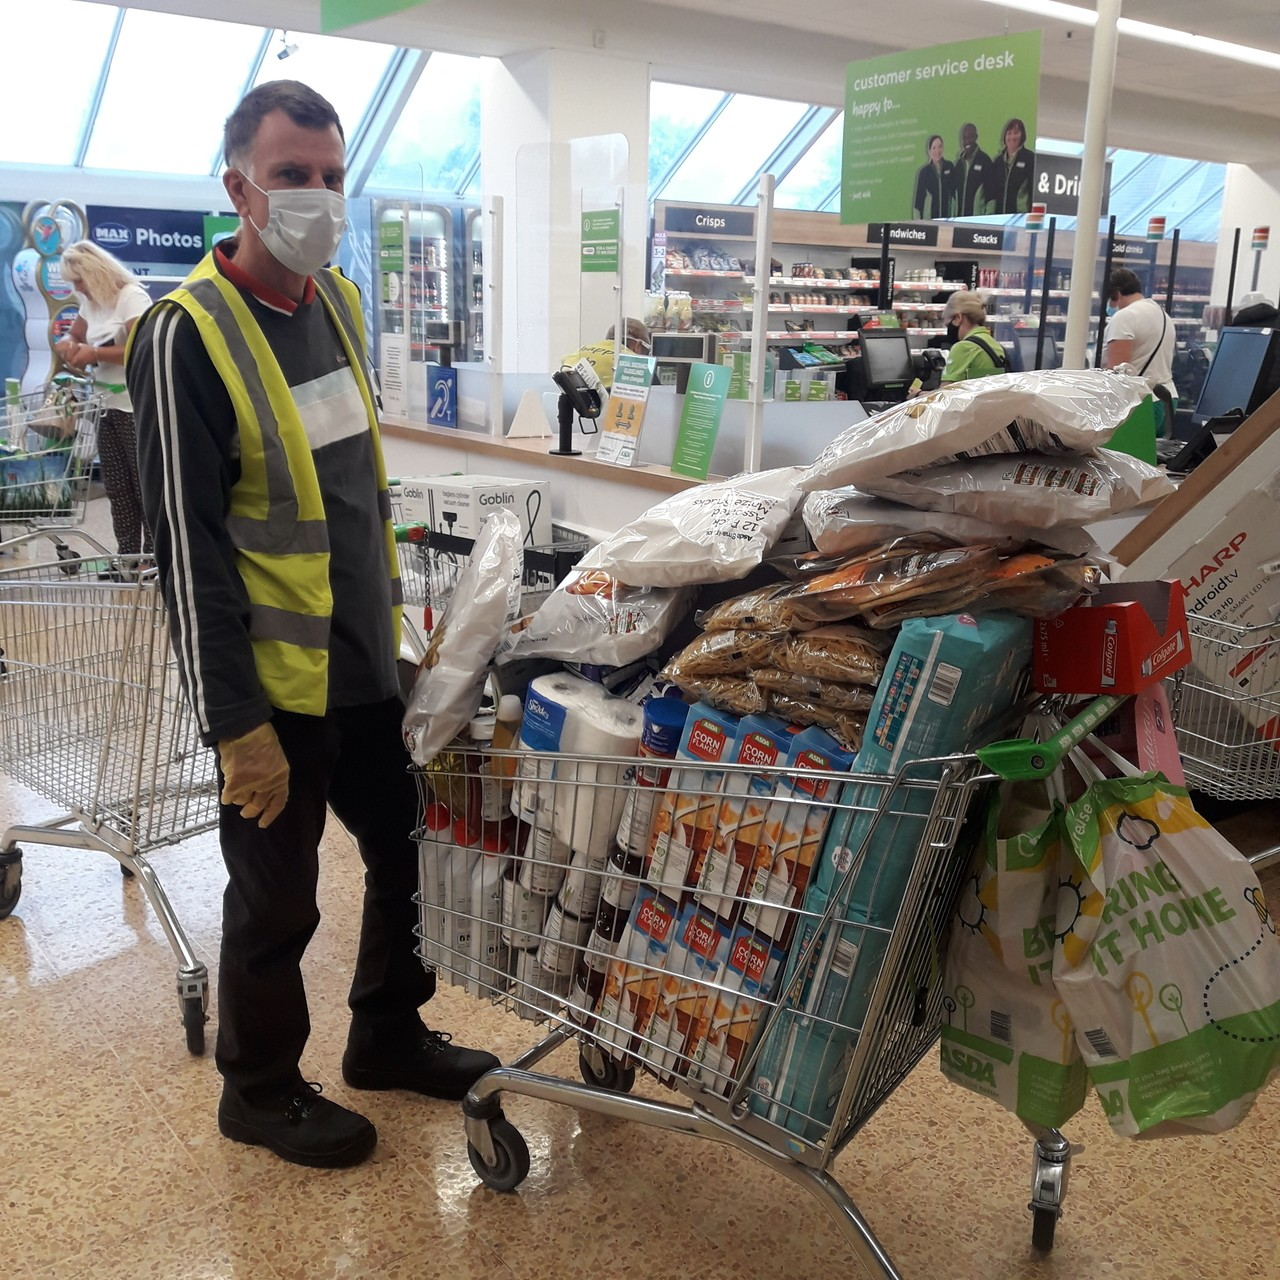 Donation to St Paul's Pantry food bank at St Paul's Centre | Asda Crewe